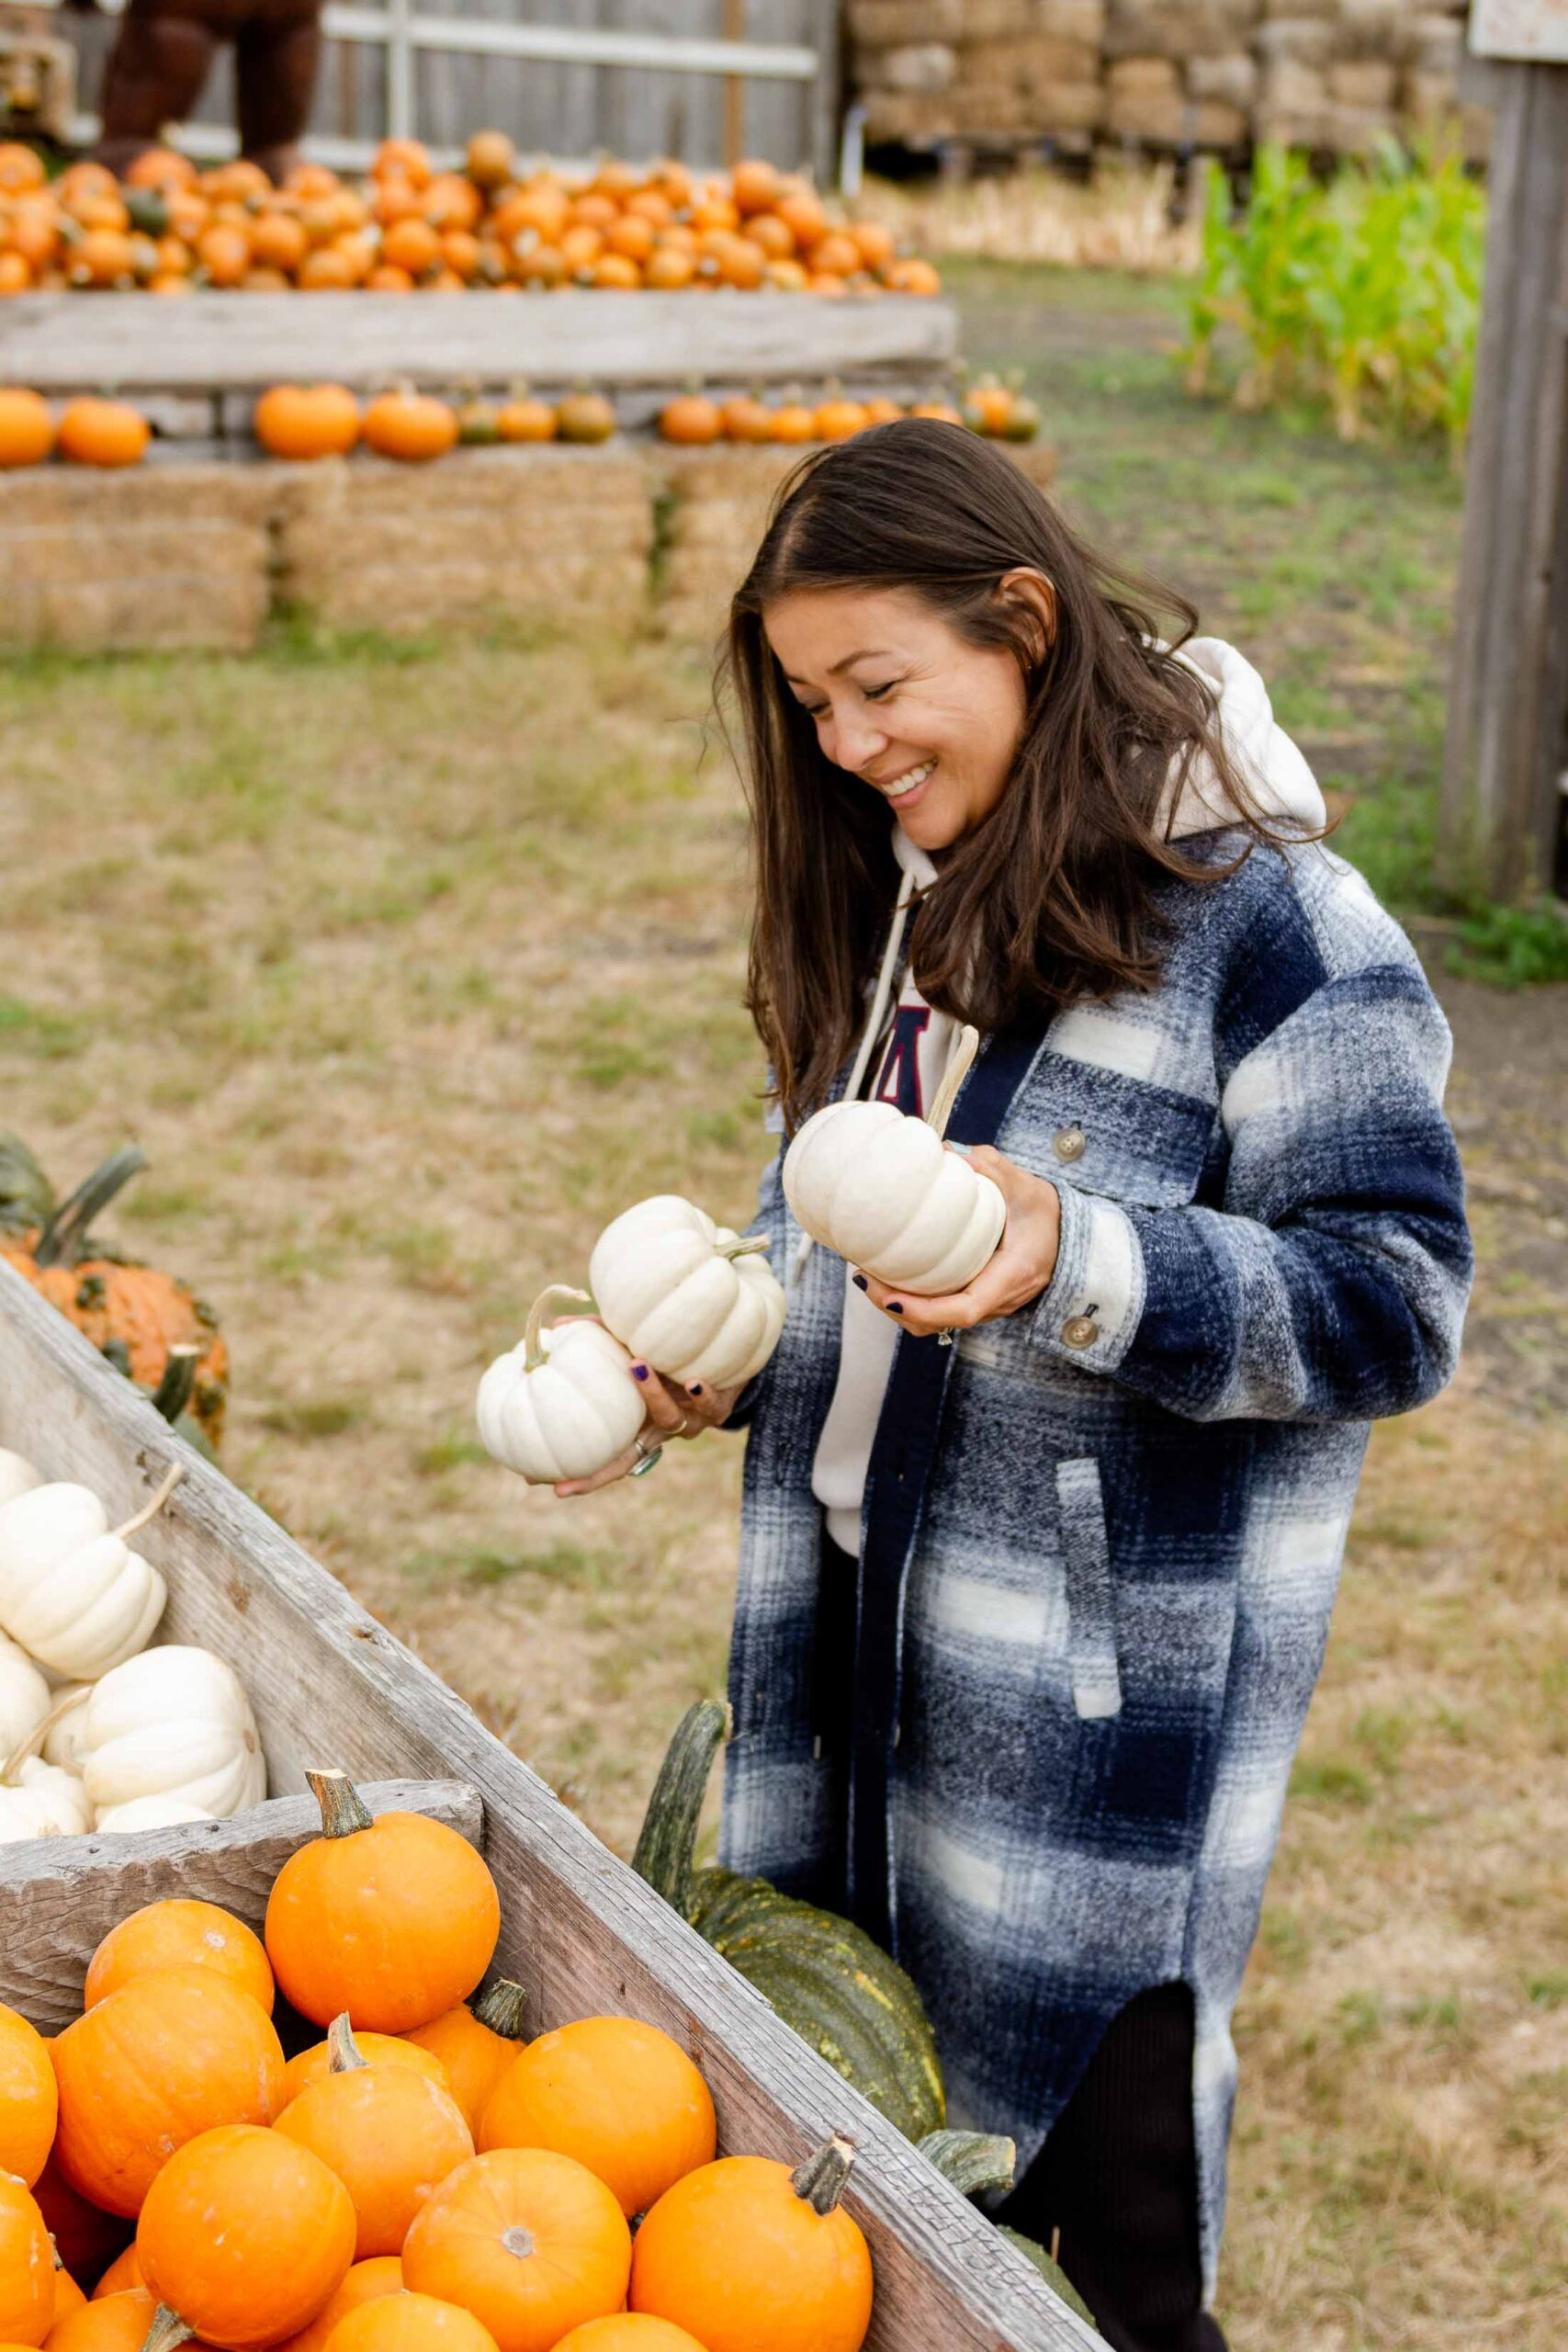 To the rescue: an outfit that pairs cozy fall textures & patterns with easy silhouettes practical enough for the pumpkin patch & wheelbarrow races through the fields -- all while nailing that quintessential fall vibe.